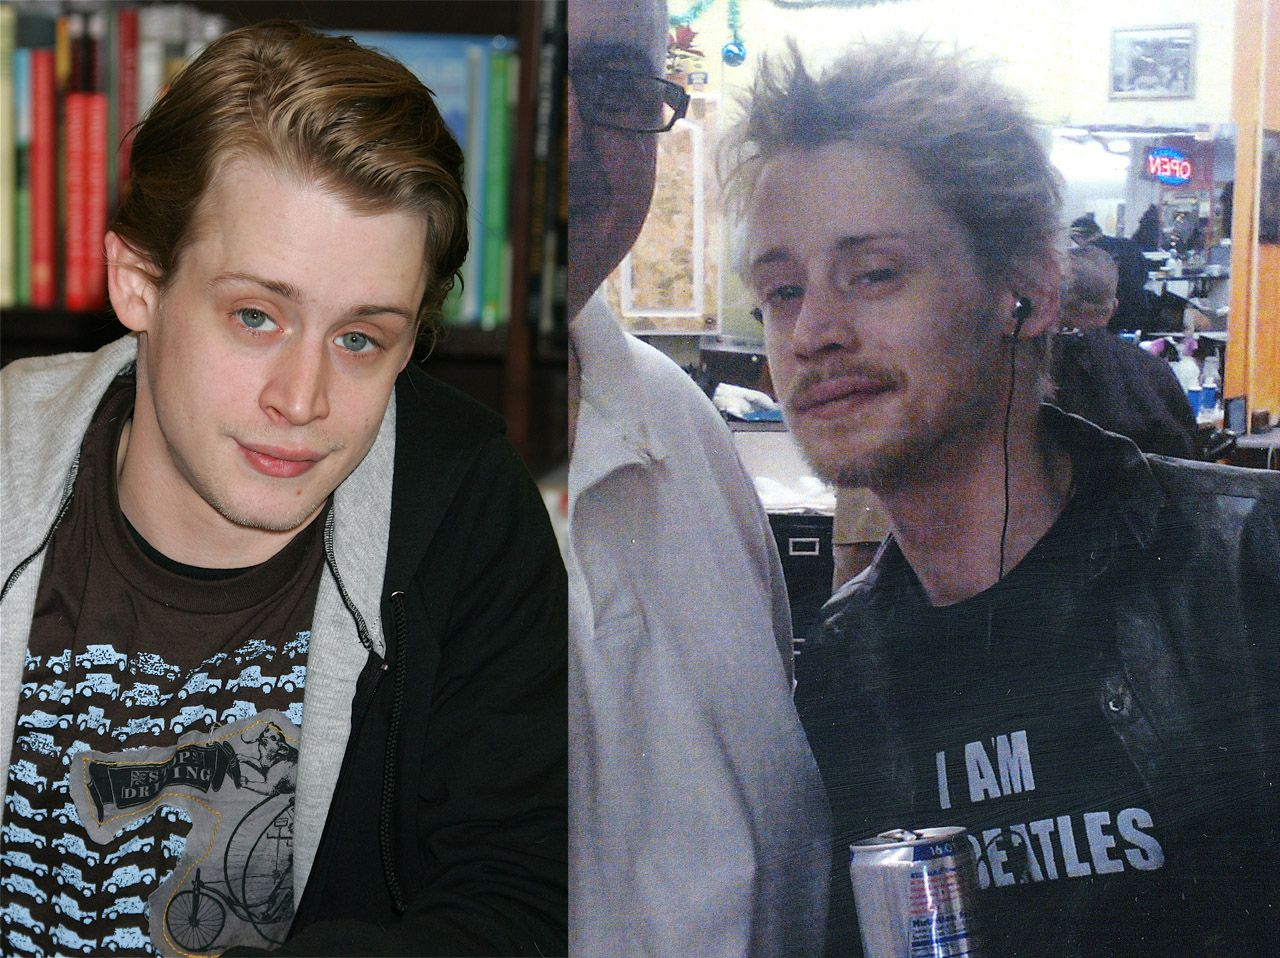 macaulay culkin: famous faces ruined by drugs | health | pinterest